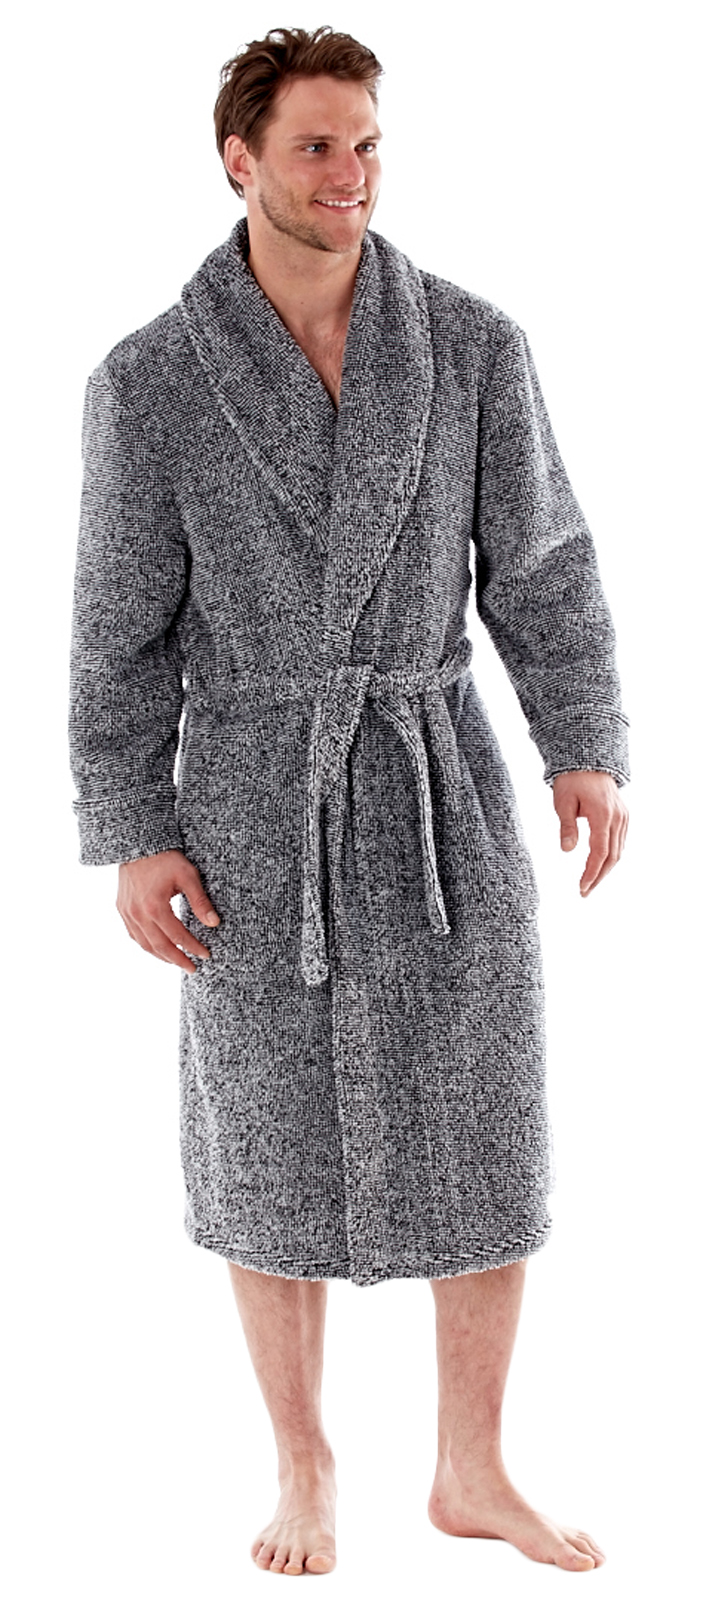 Mens Luxury Soft Fleece Bathrobe Dressing Gown Housecoat Warm Robe ...